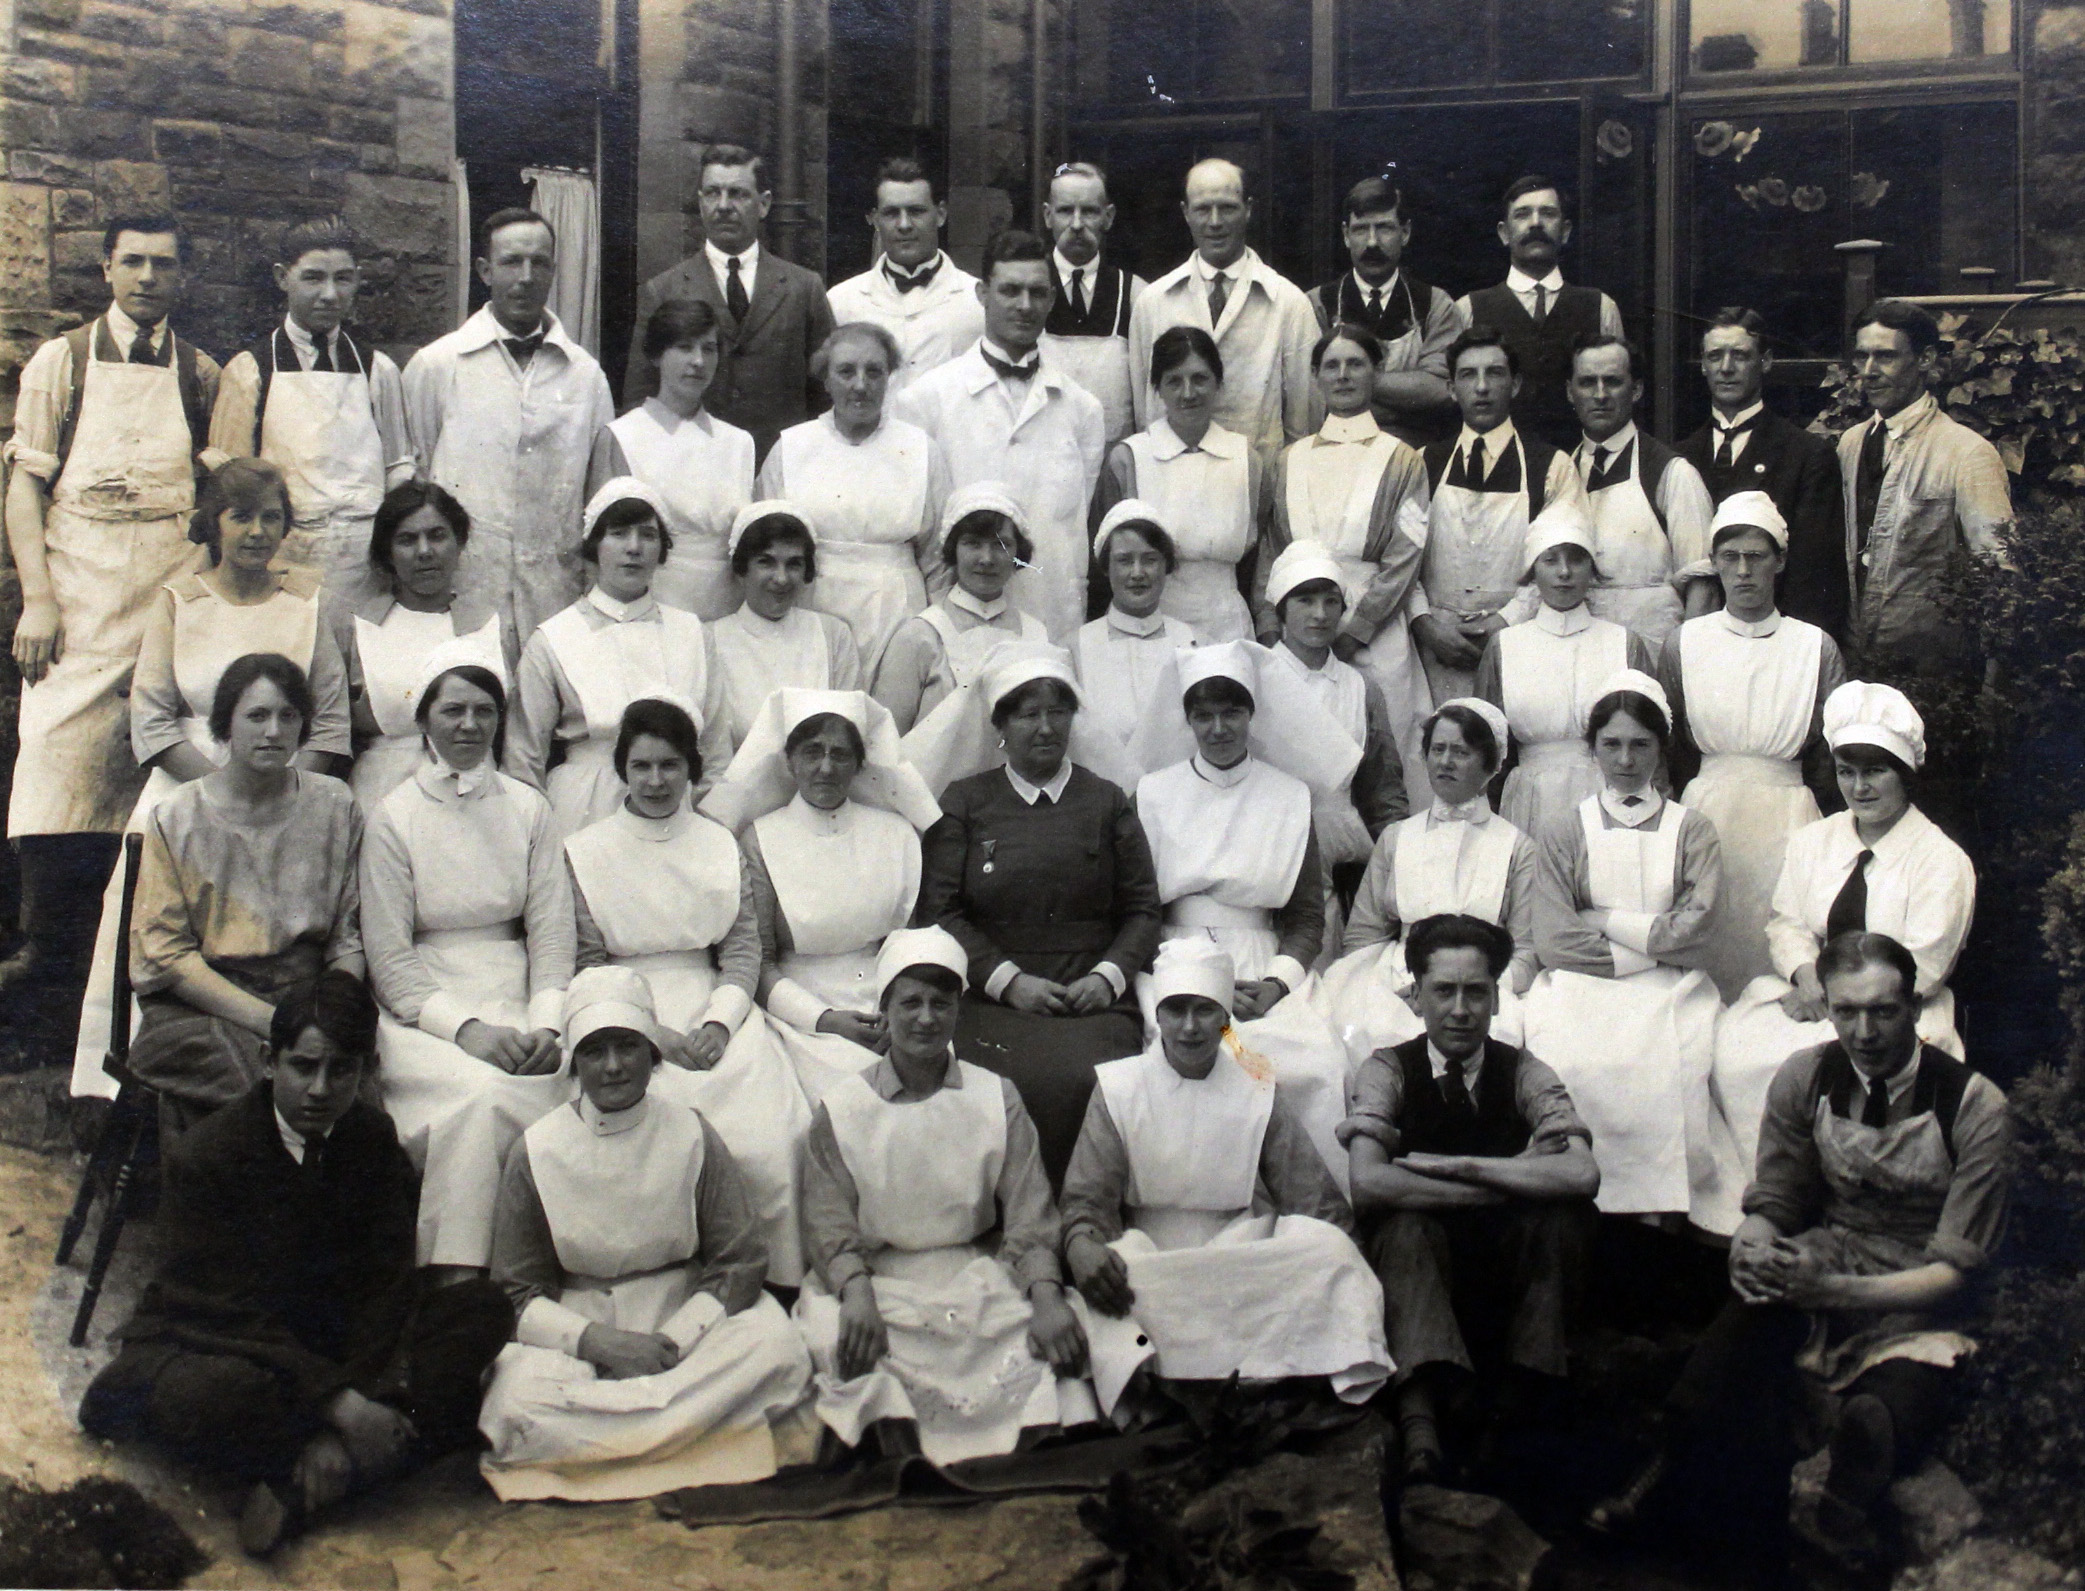 Matron Clara Deacon of the Prince of Wales Hospital, Cardiff